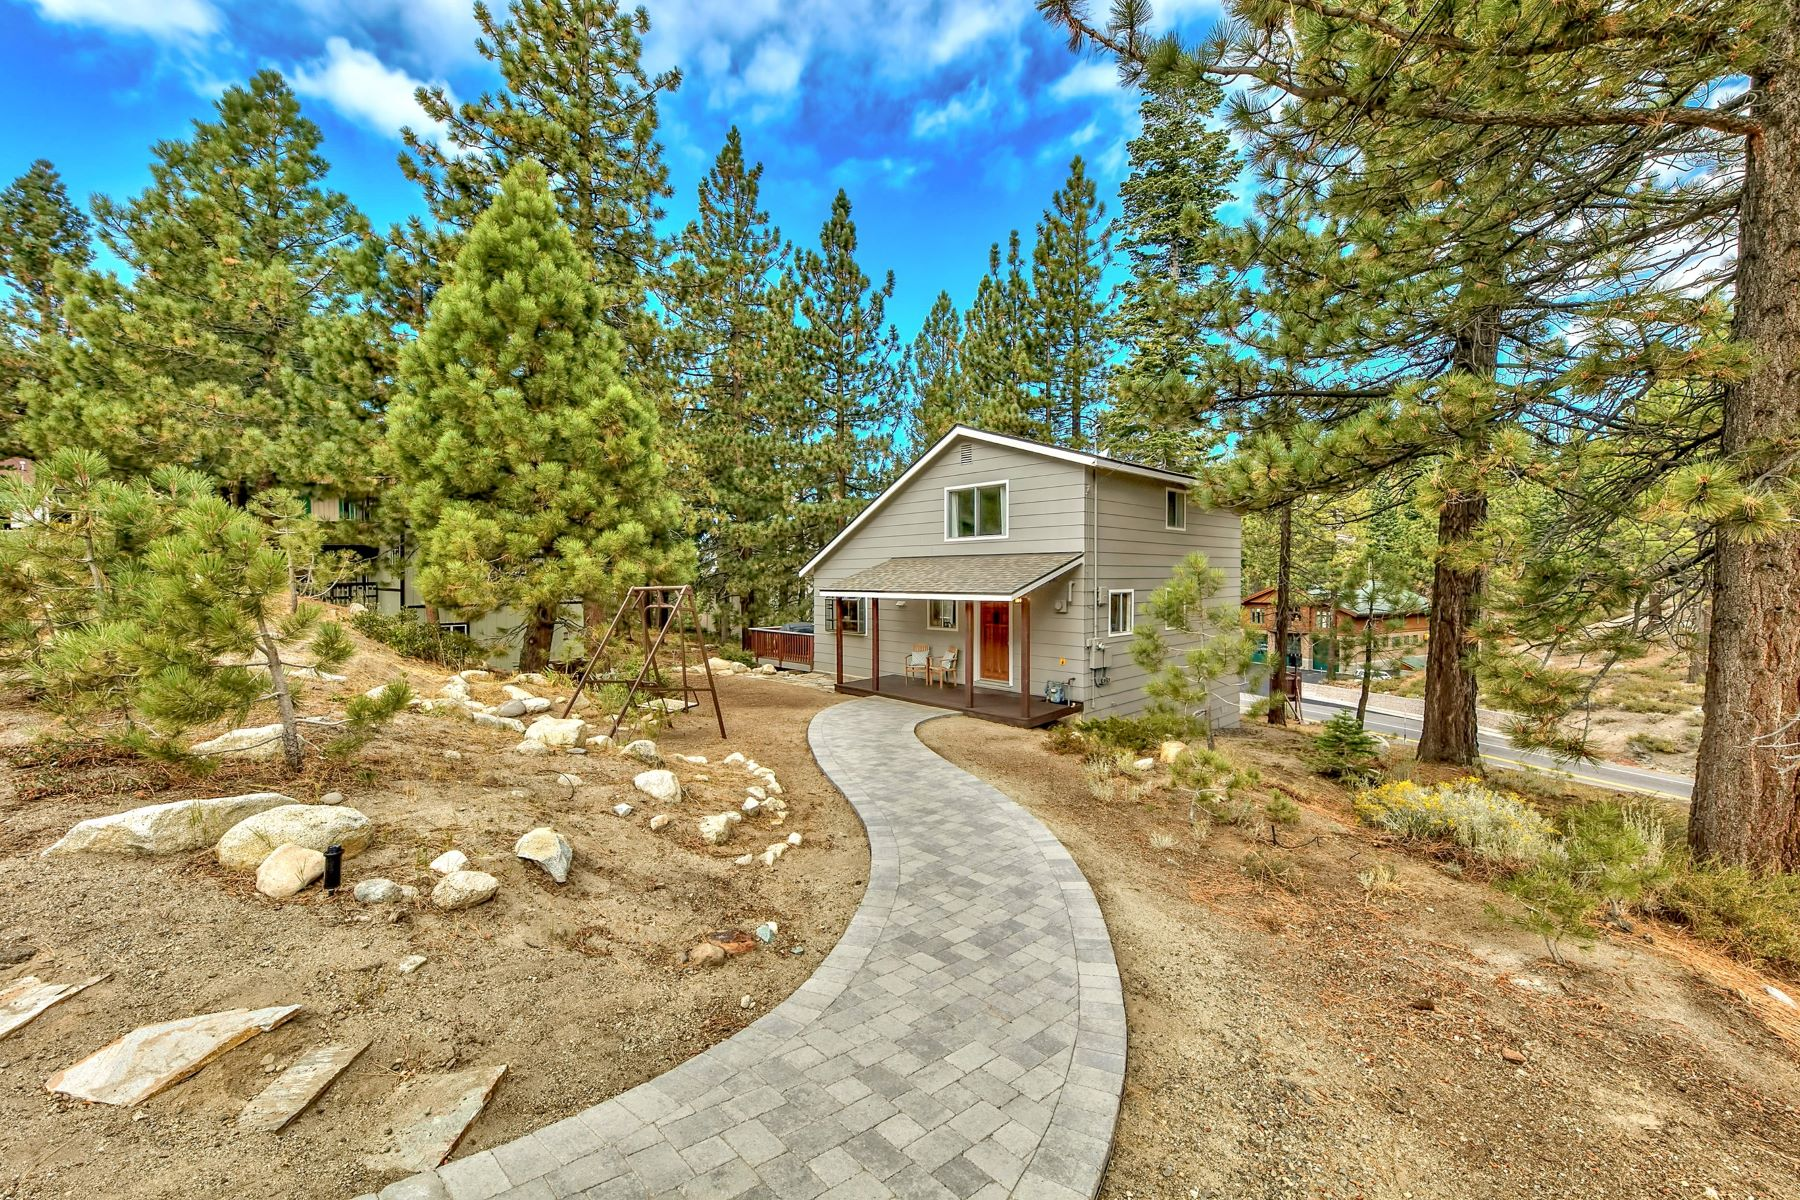 Property for Active at 748 Tina Ct, Stateline NV 89449 748 Tina Ct. Stateline, Nevada 89449 United States